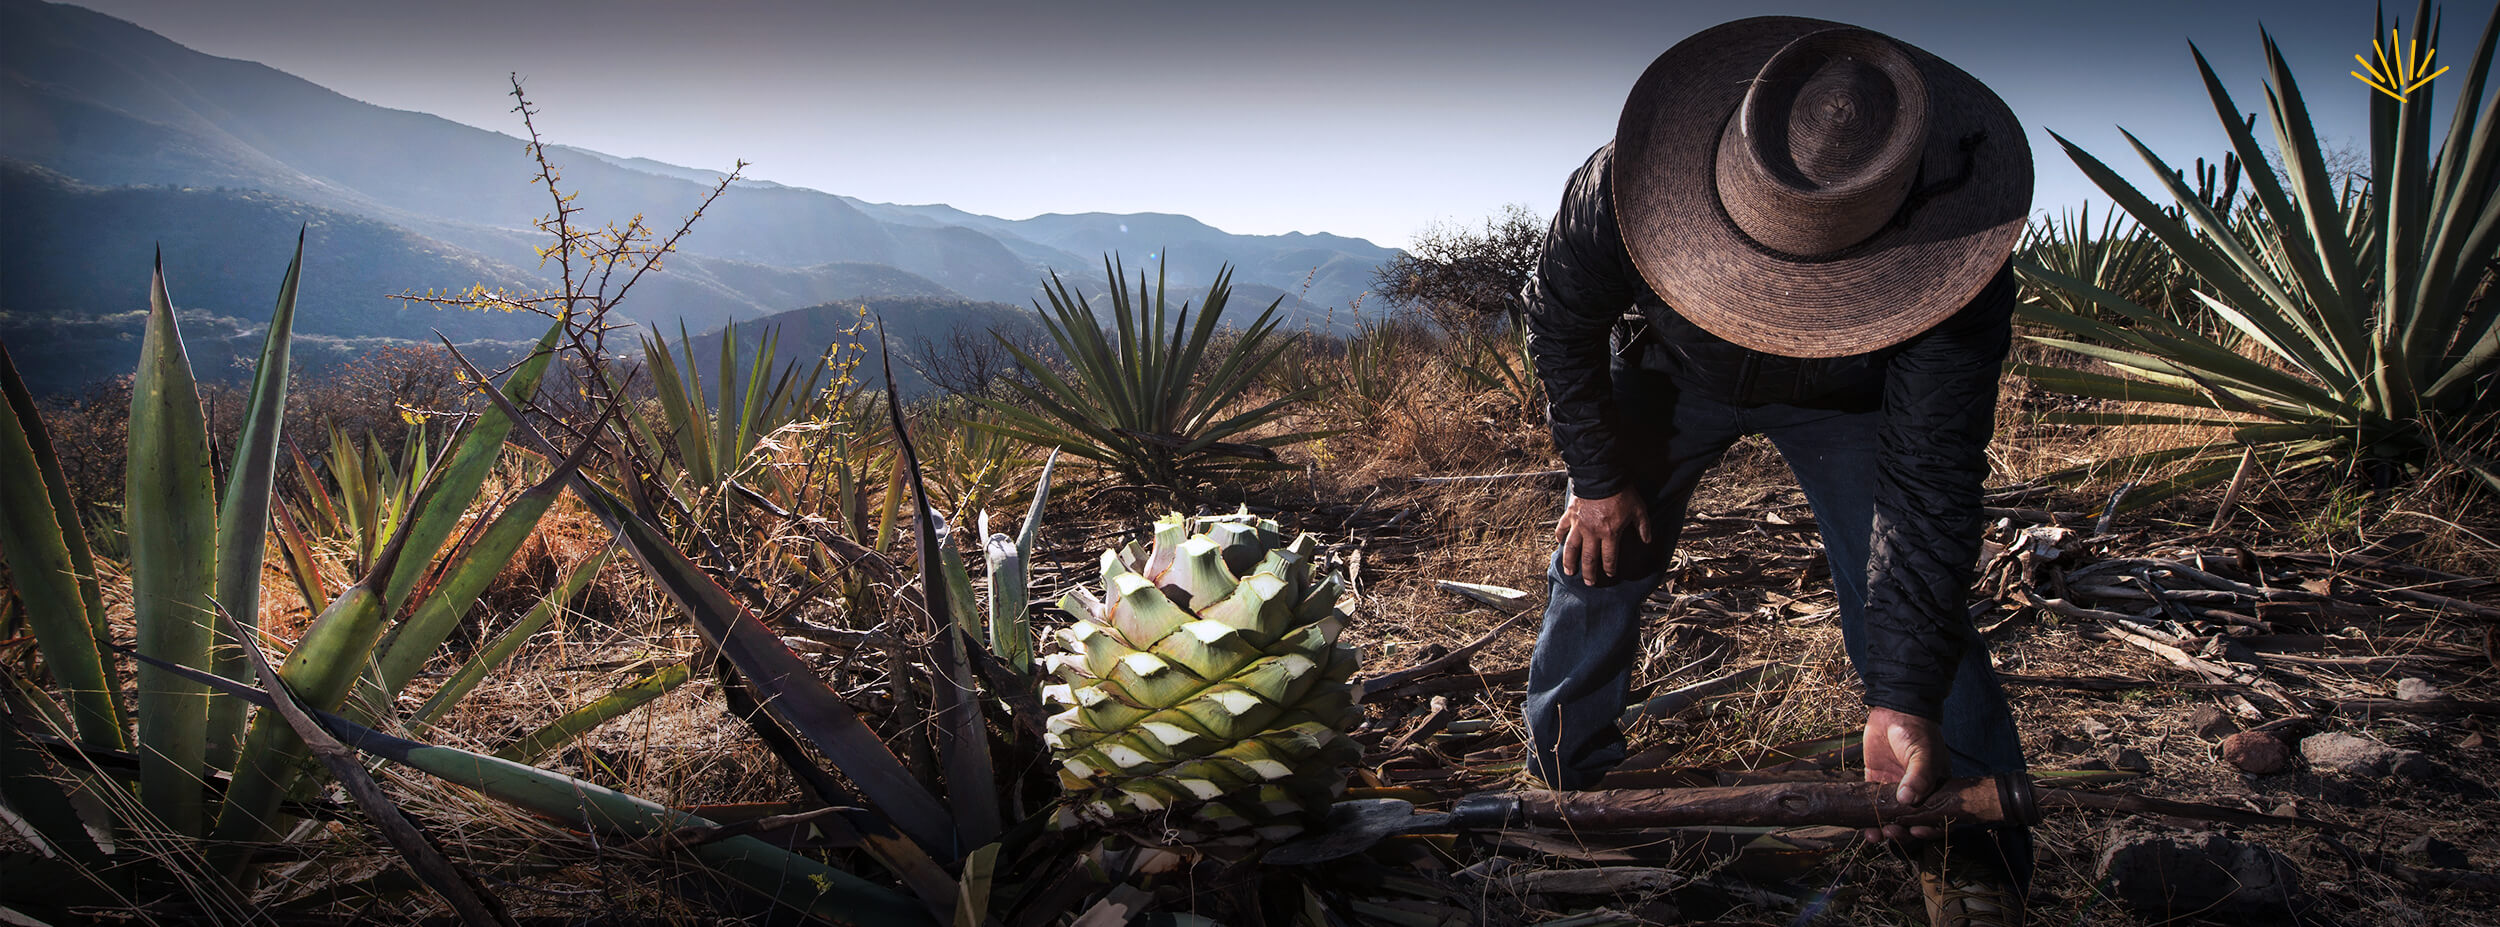 Mezcal, one of the world's most complex distillates